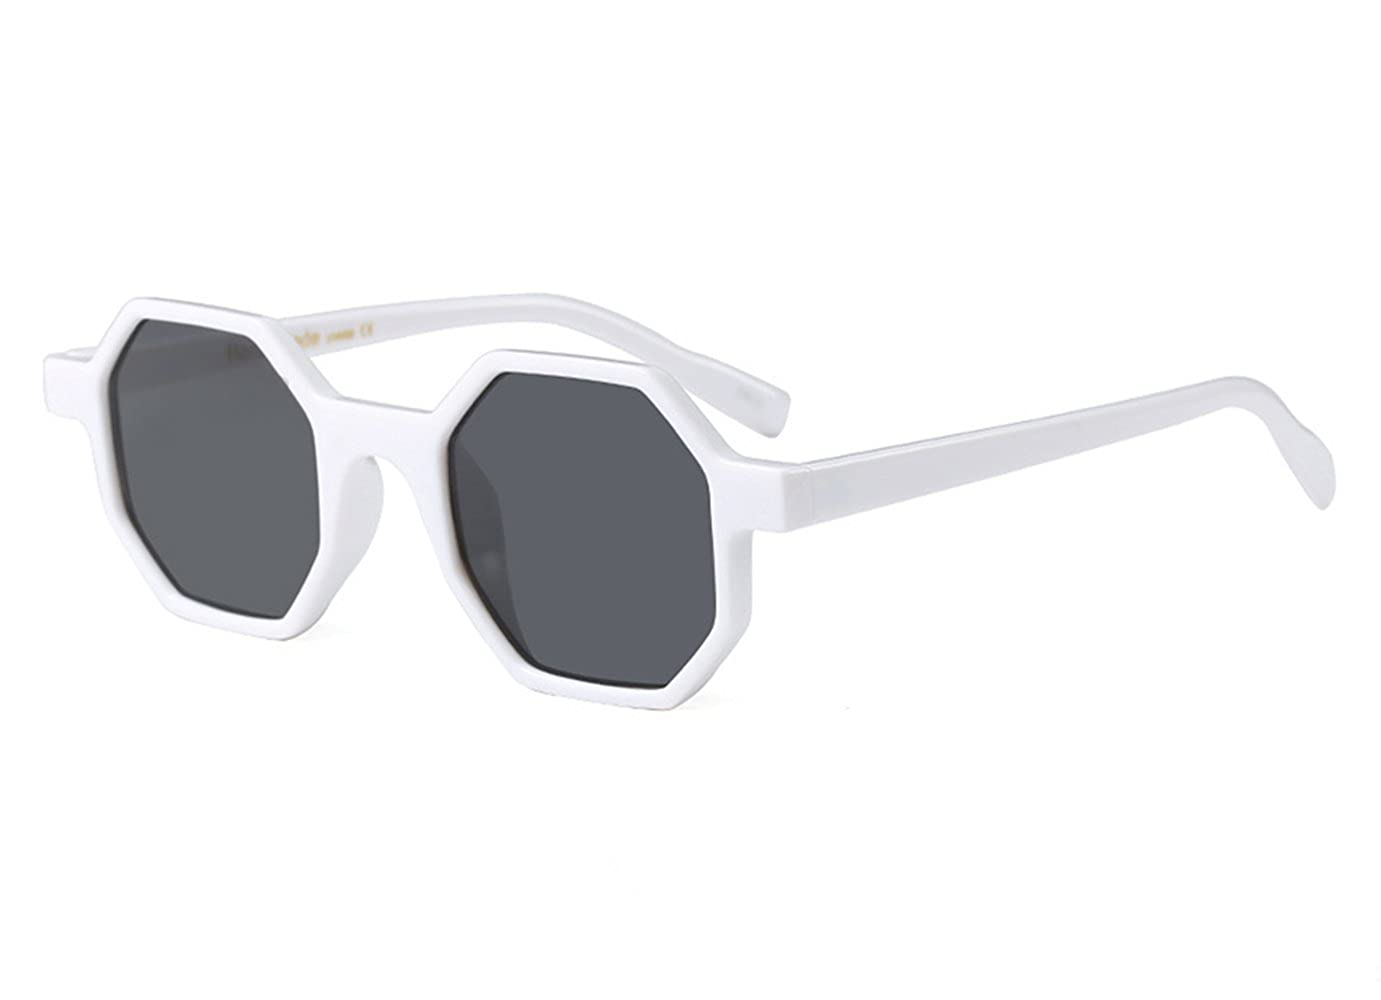 Hexagon Sunglasses for Women Men Small Square Geometric Frame Vintage Plastic Sun Protection Glasses Electronic products clothing gardening products